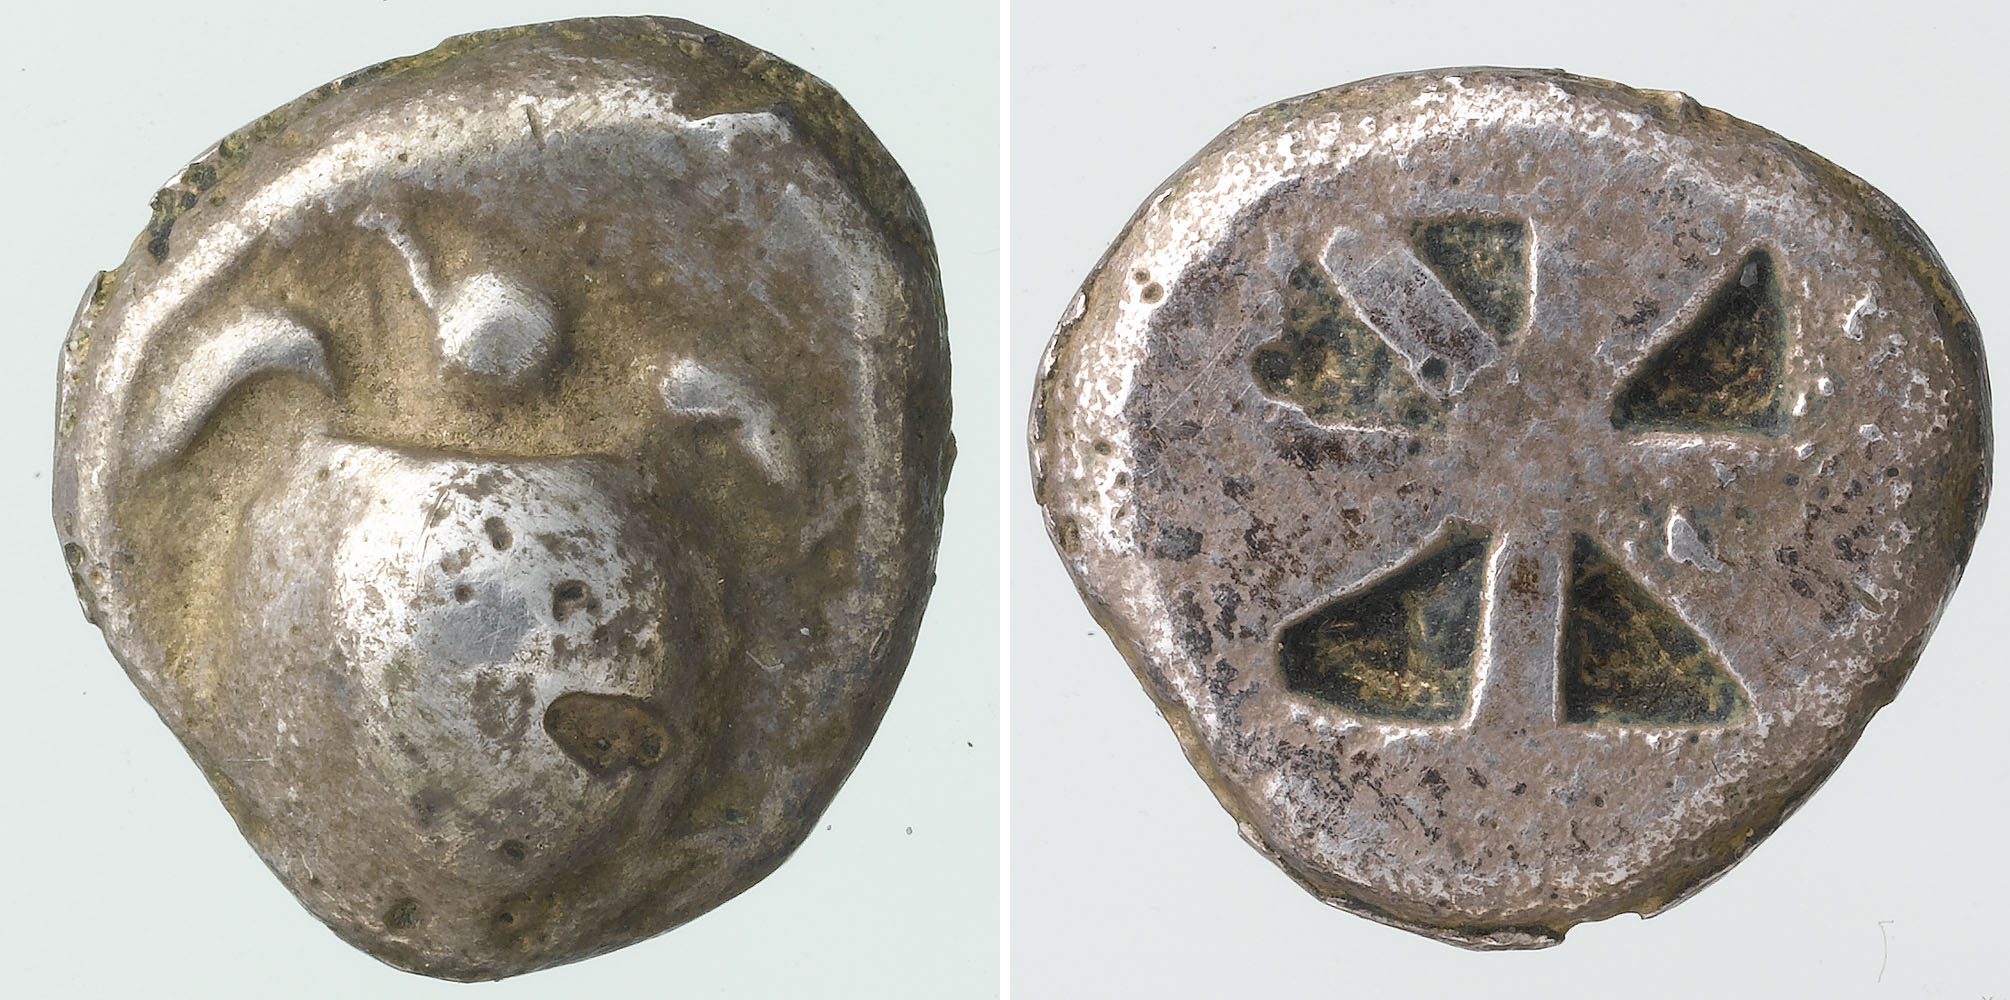 a photo of both sides of a crudely shaped coin with a turtle on it